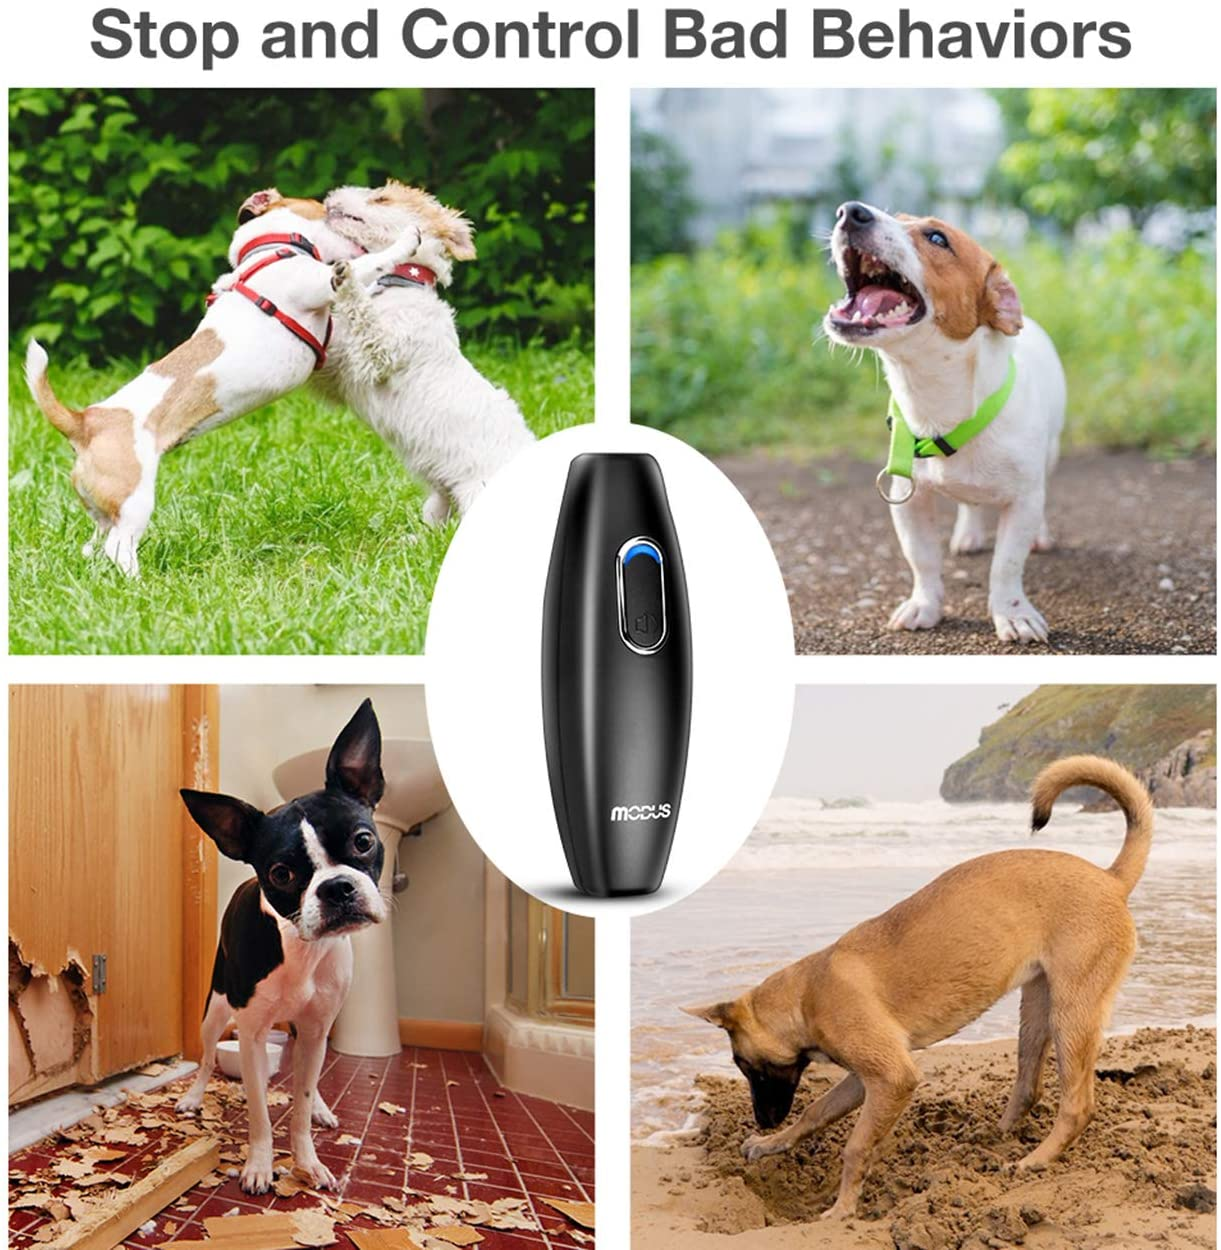 Bark Control Device - Ultrasonic Dog Bark Deterrent, 2 in 1 Dog Behavior Training Tool of 16.4 Ft Effective Control Range, Safe to use, with LED Indicator/Wrist Strap Outdoor Indoor